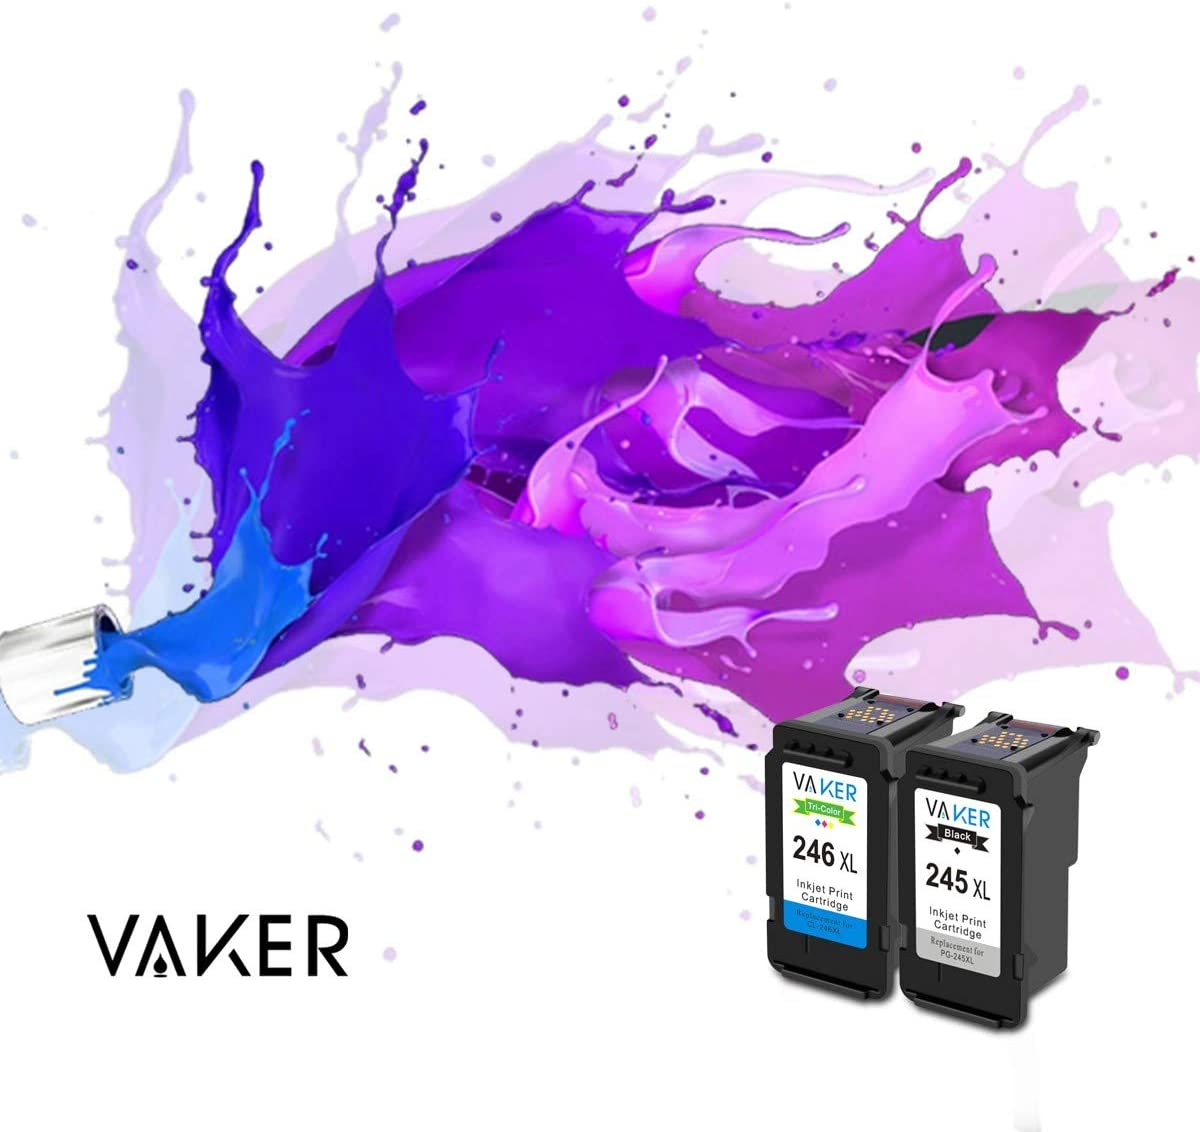 Amazon.com: VAKER - Cartucho de tinta remanufacturado de ...